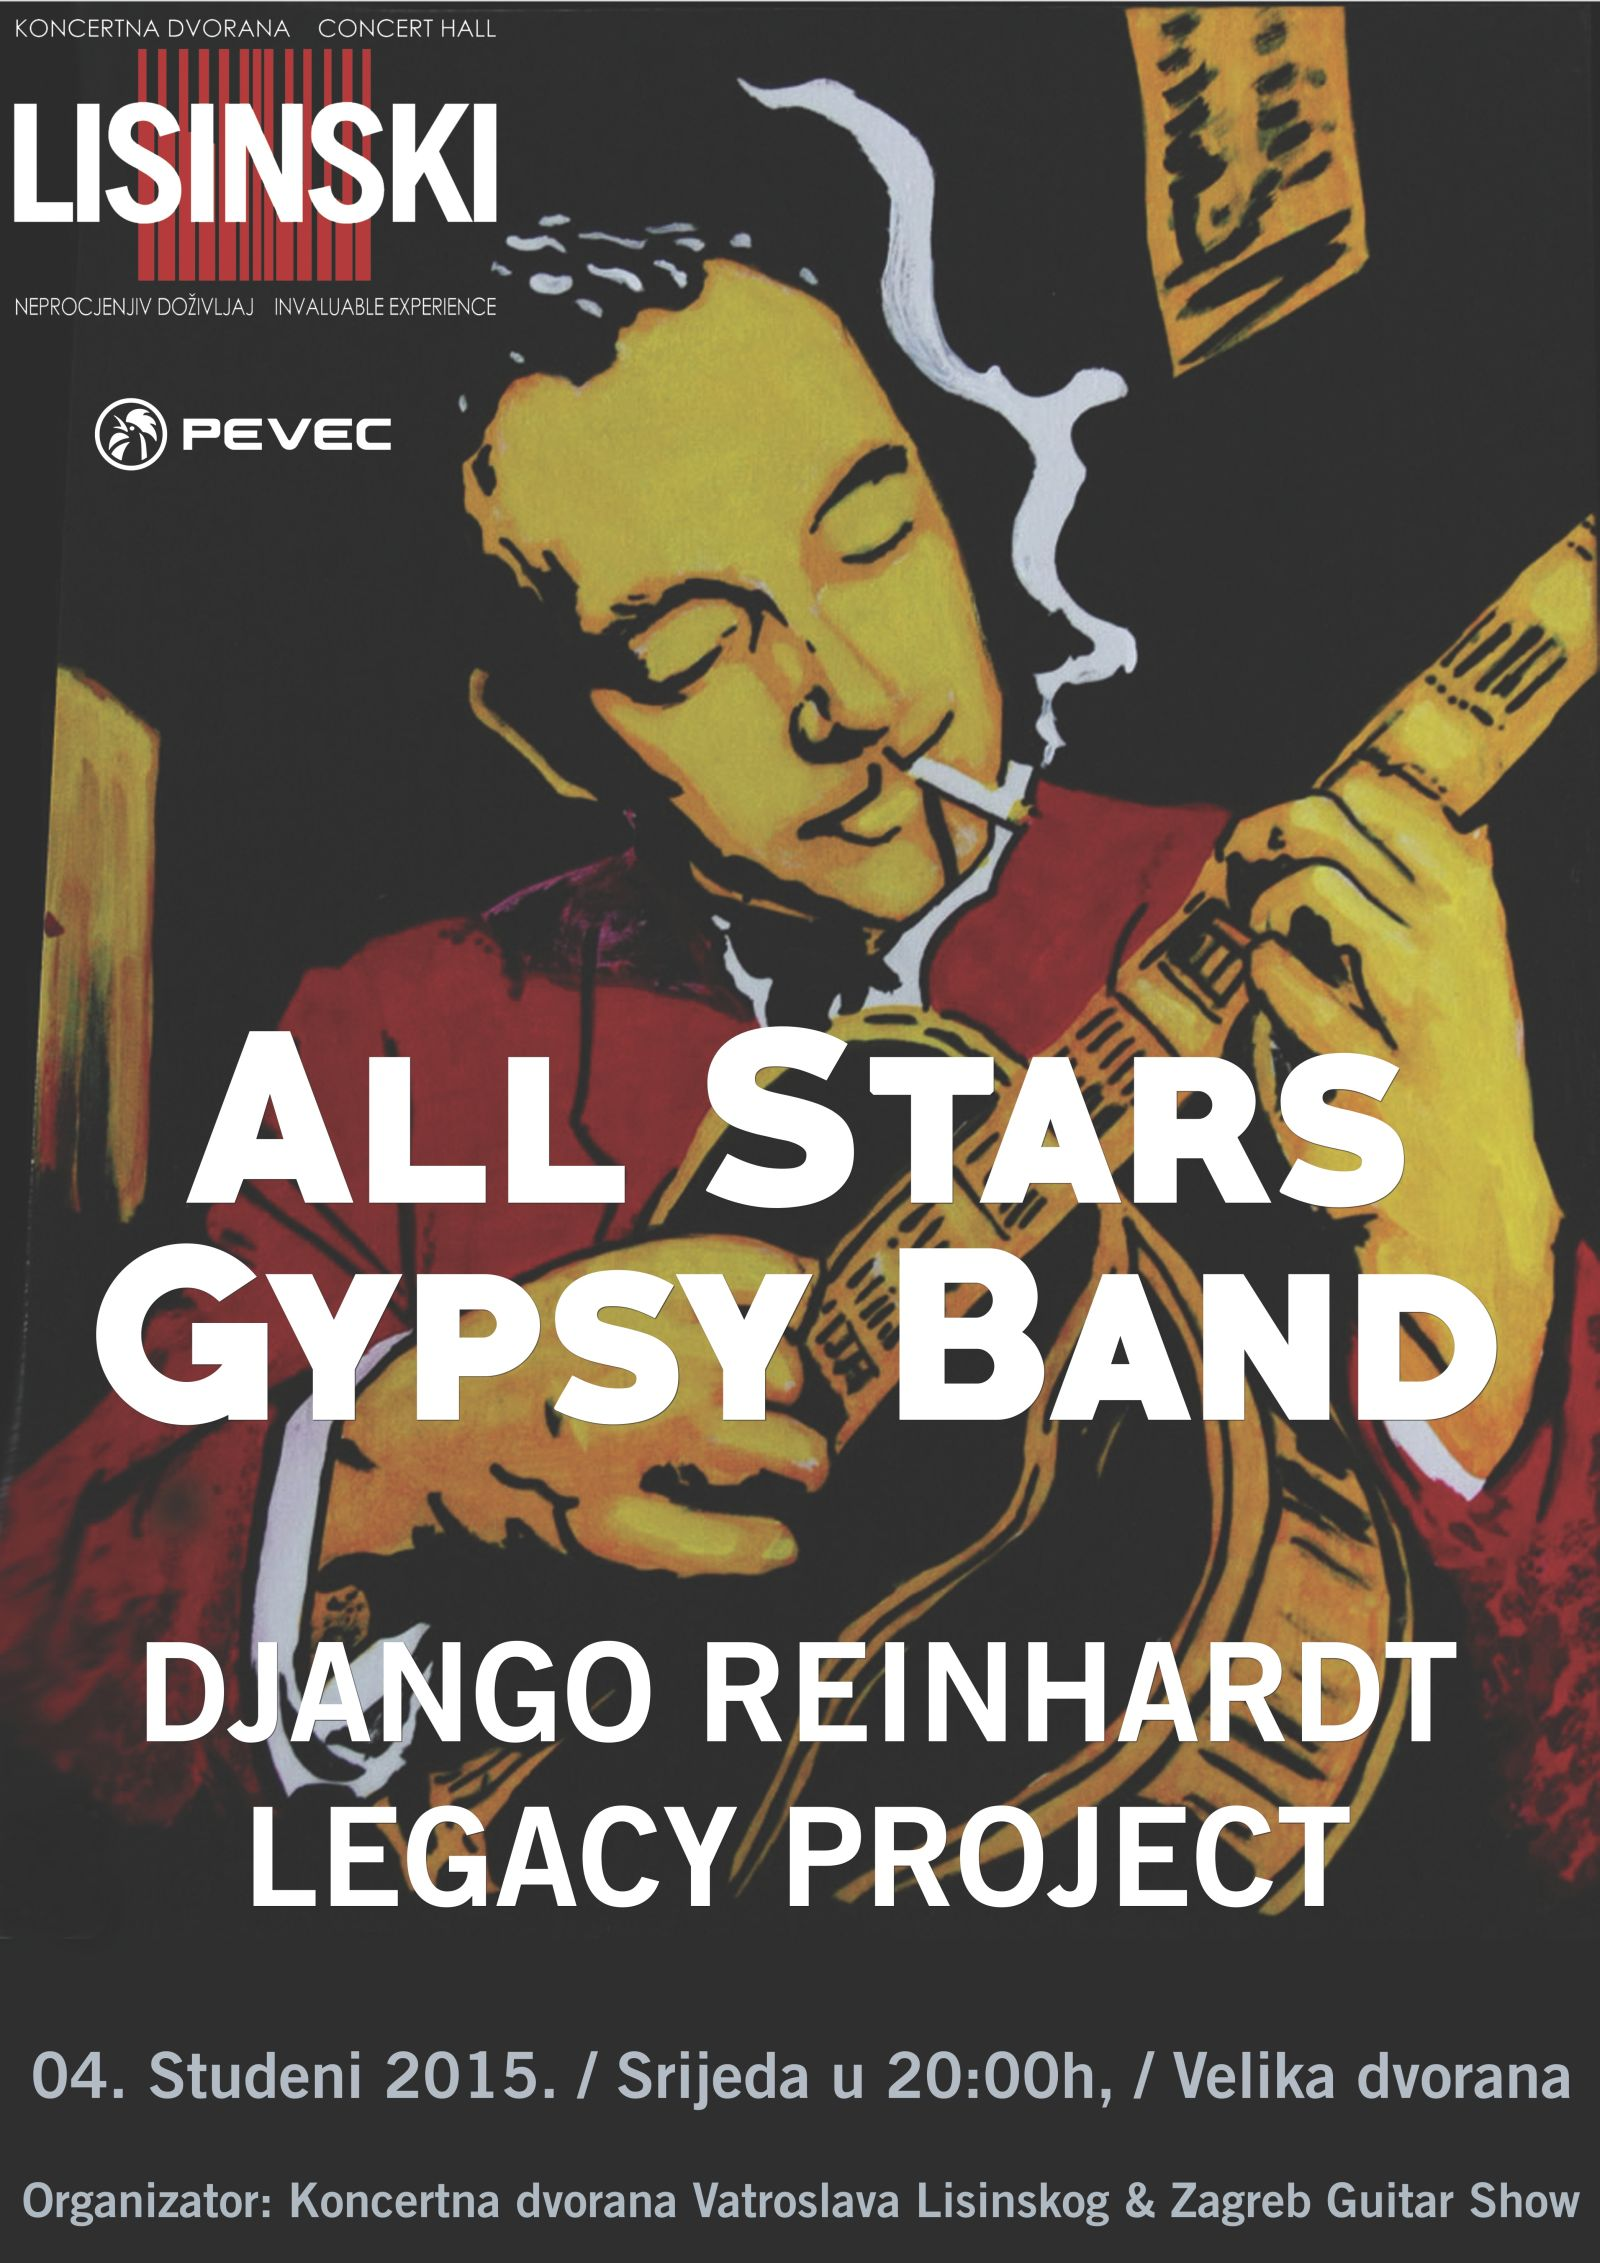 All_Stars_Gypsy_Band_present_Django_Reinhardt_Legacy_Project-